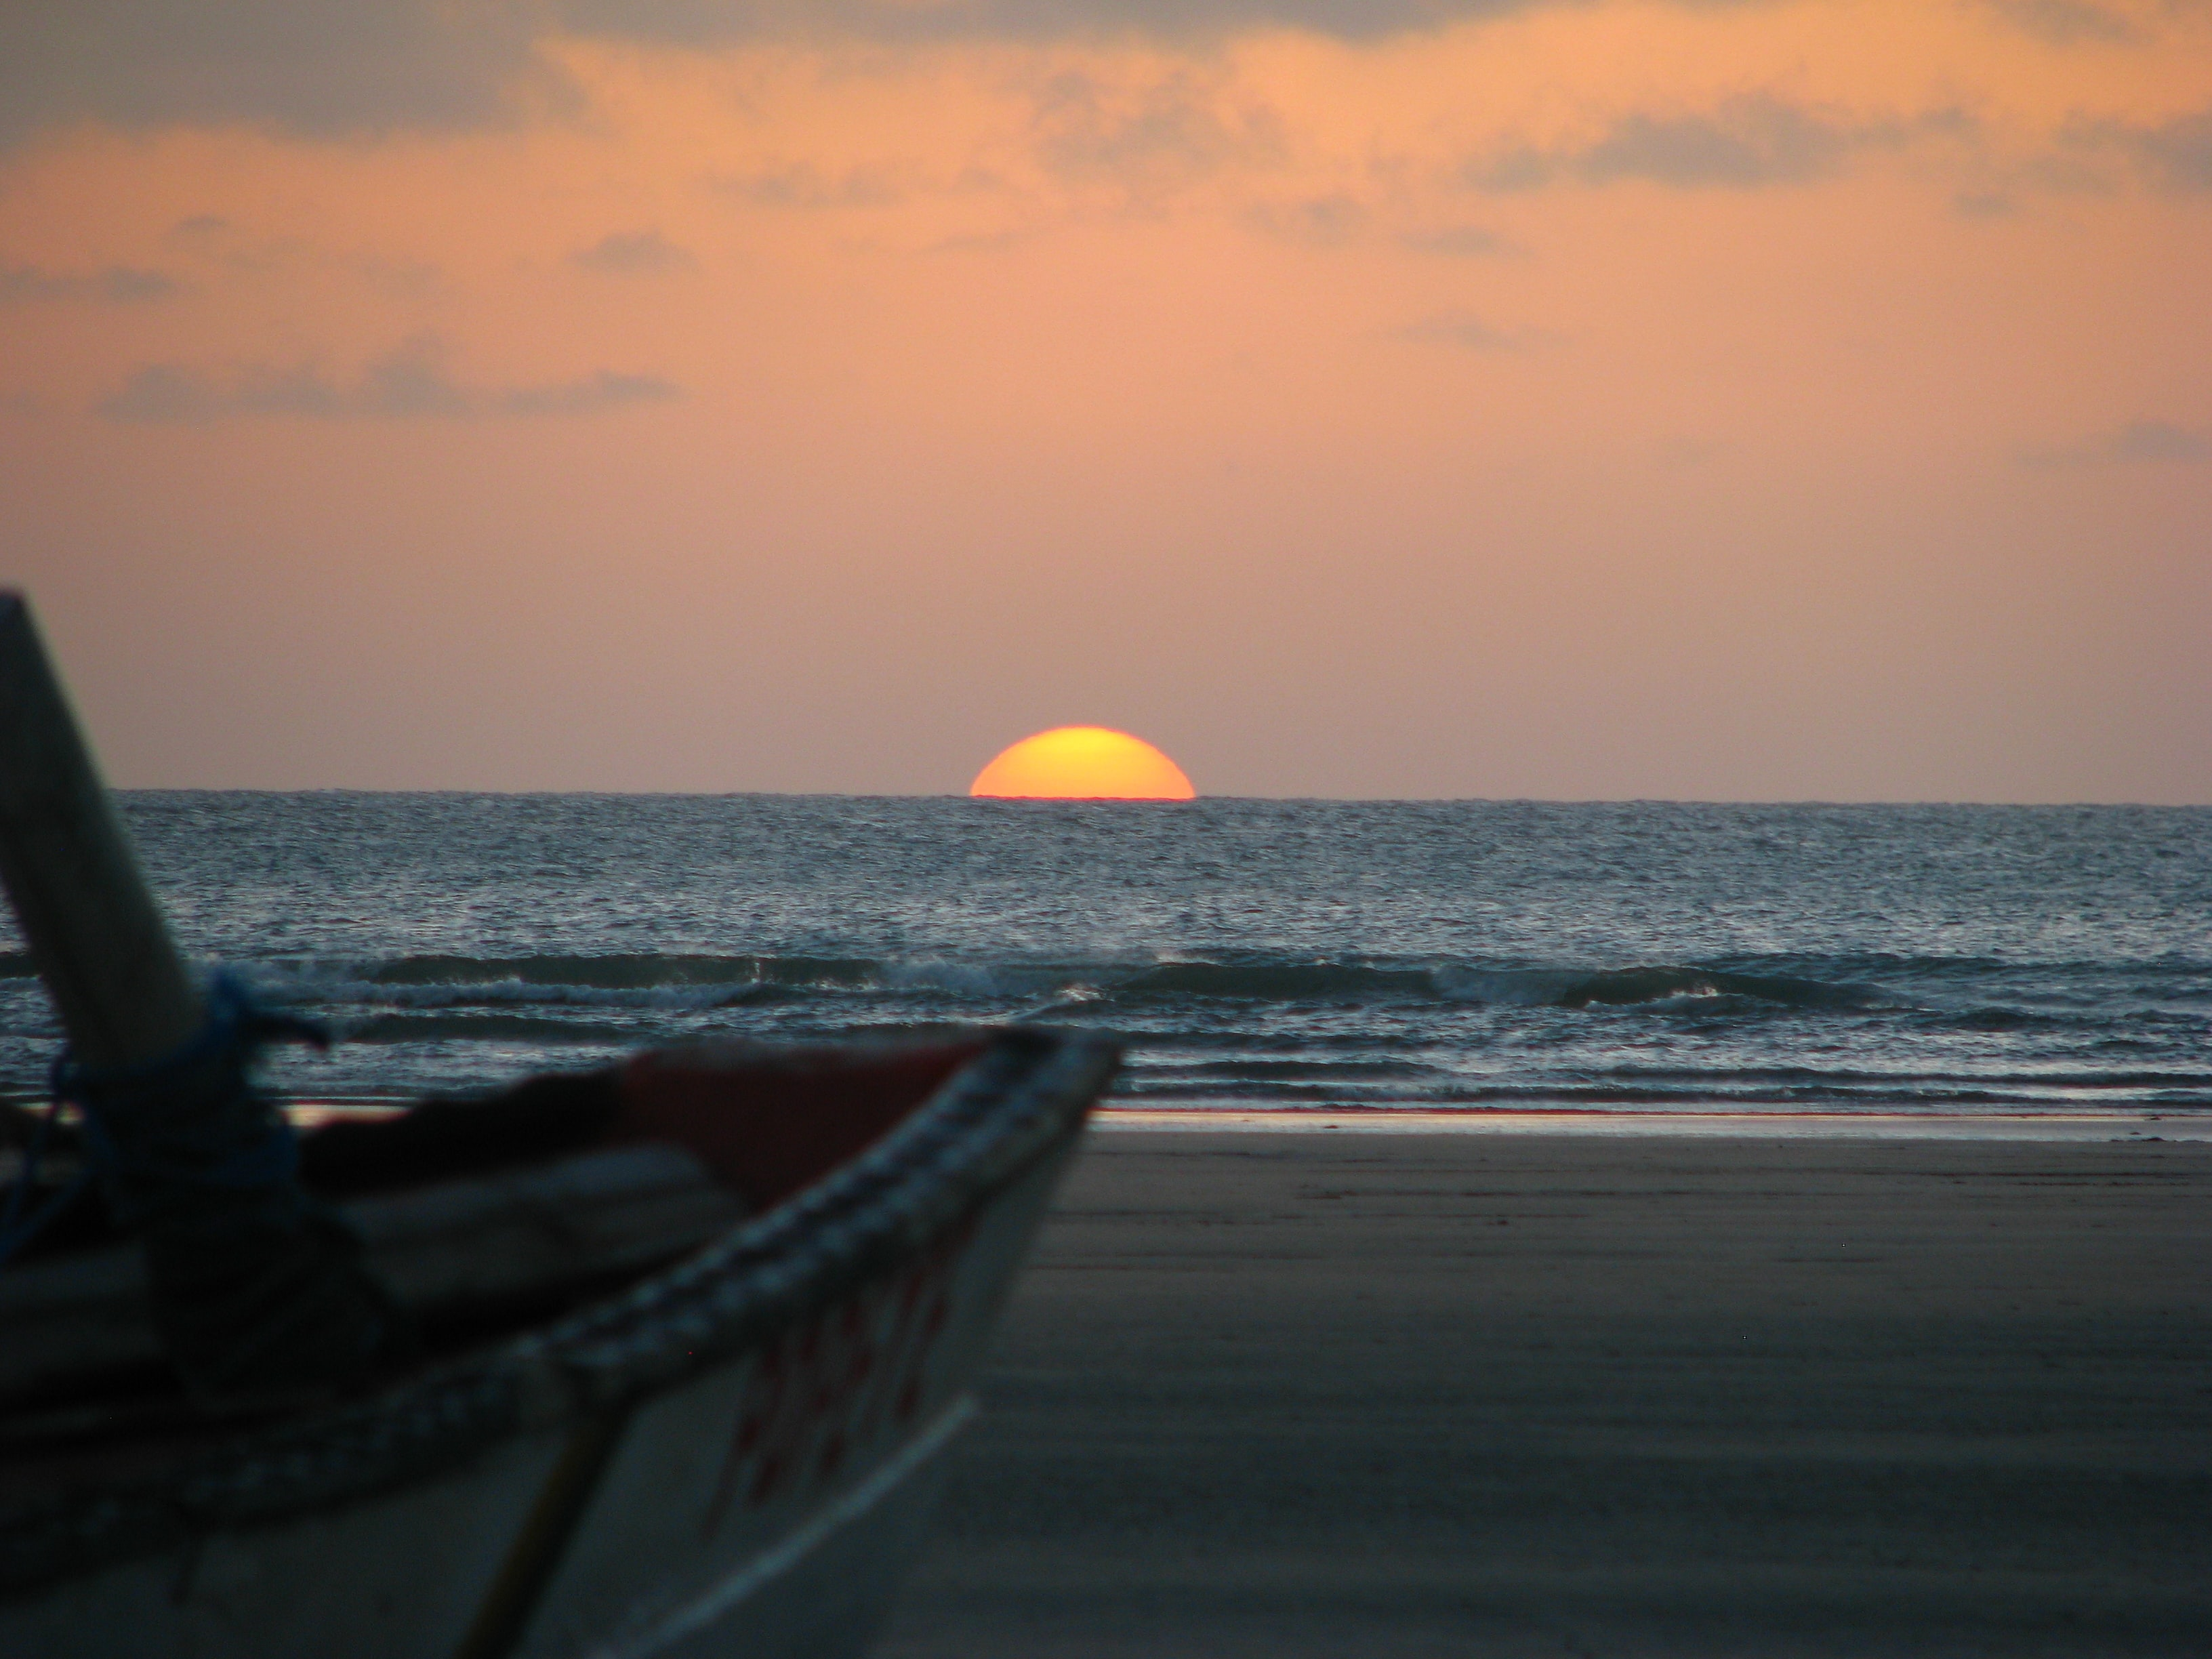 The golden sun resting on the horizon at sea with a fishing boat in the foreground